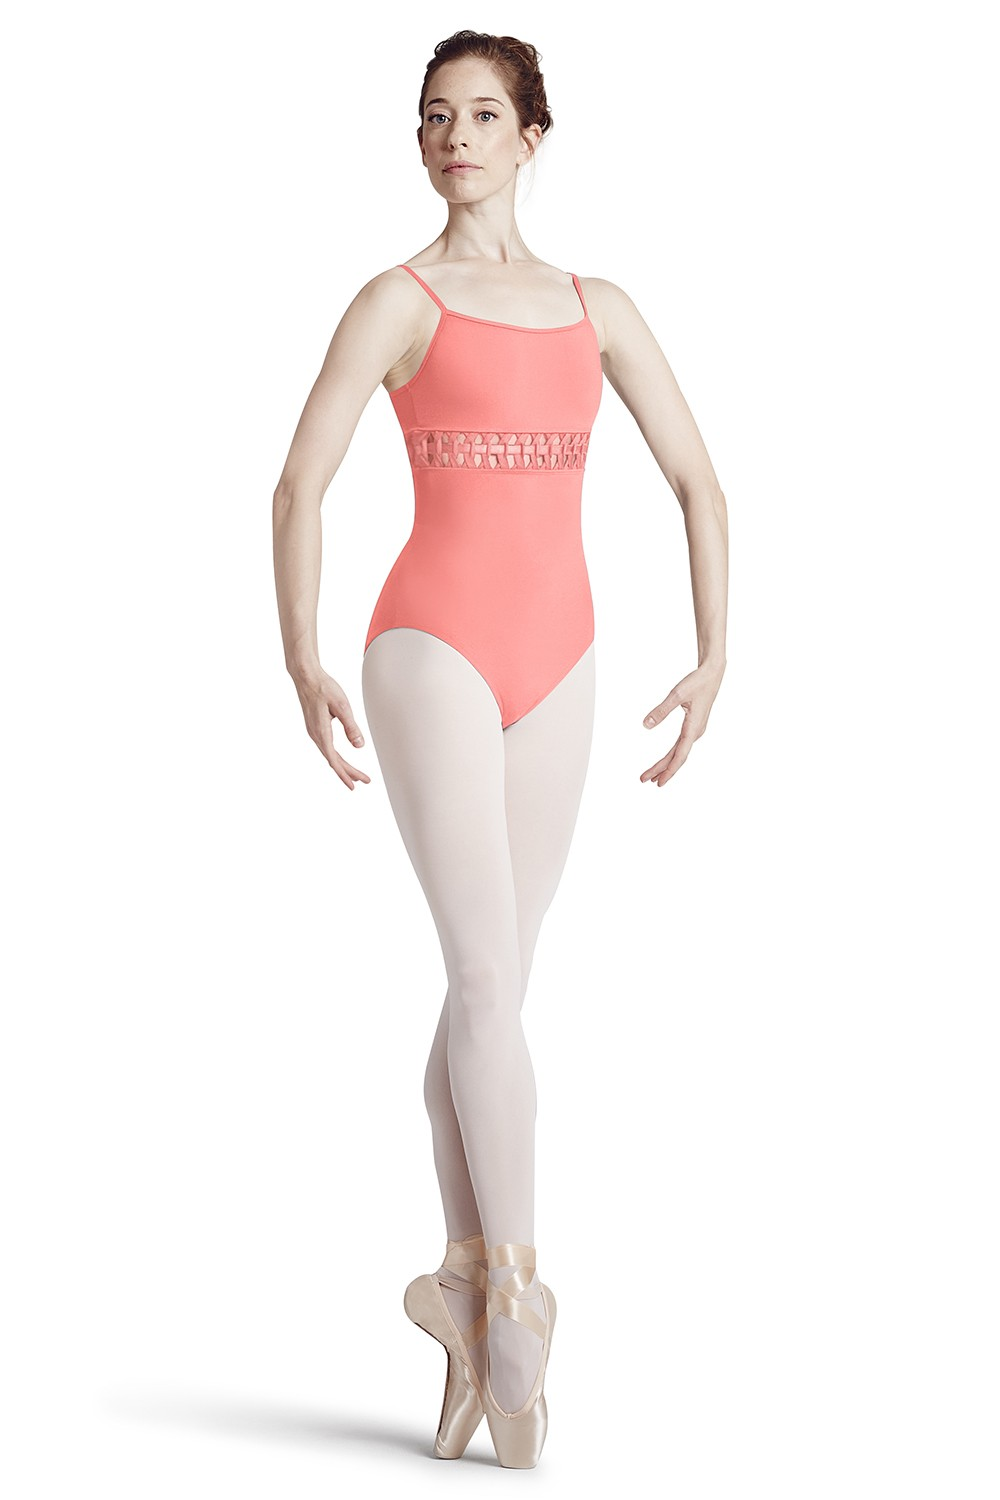 Valda Women's Dance Leotards